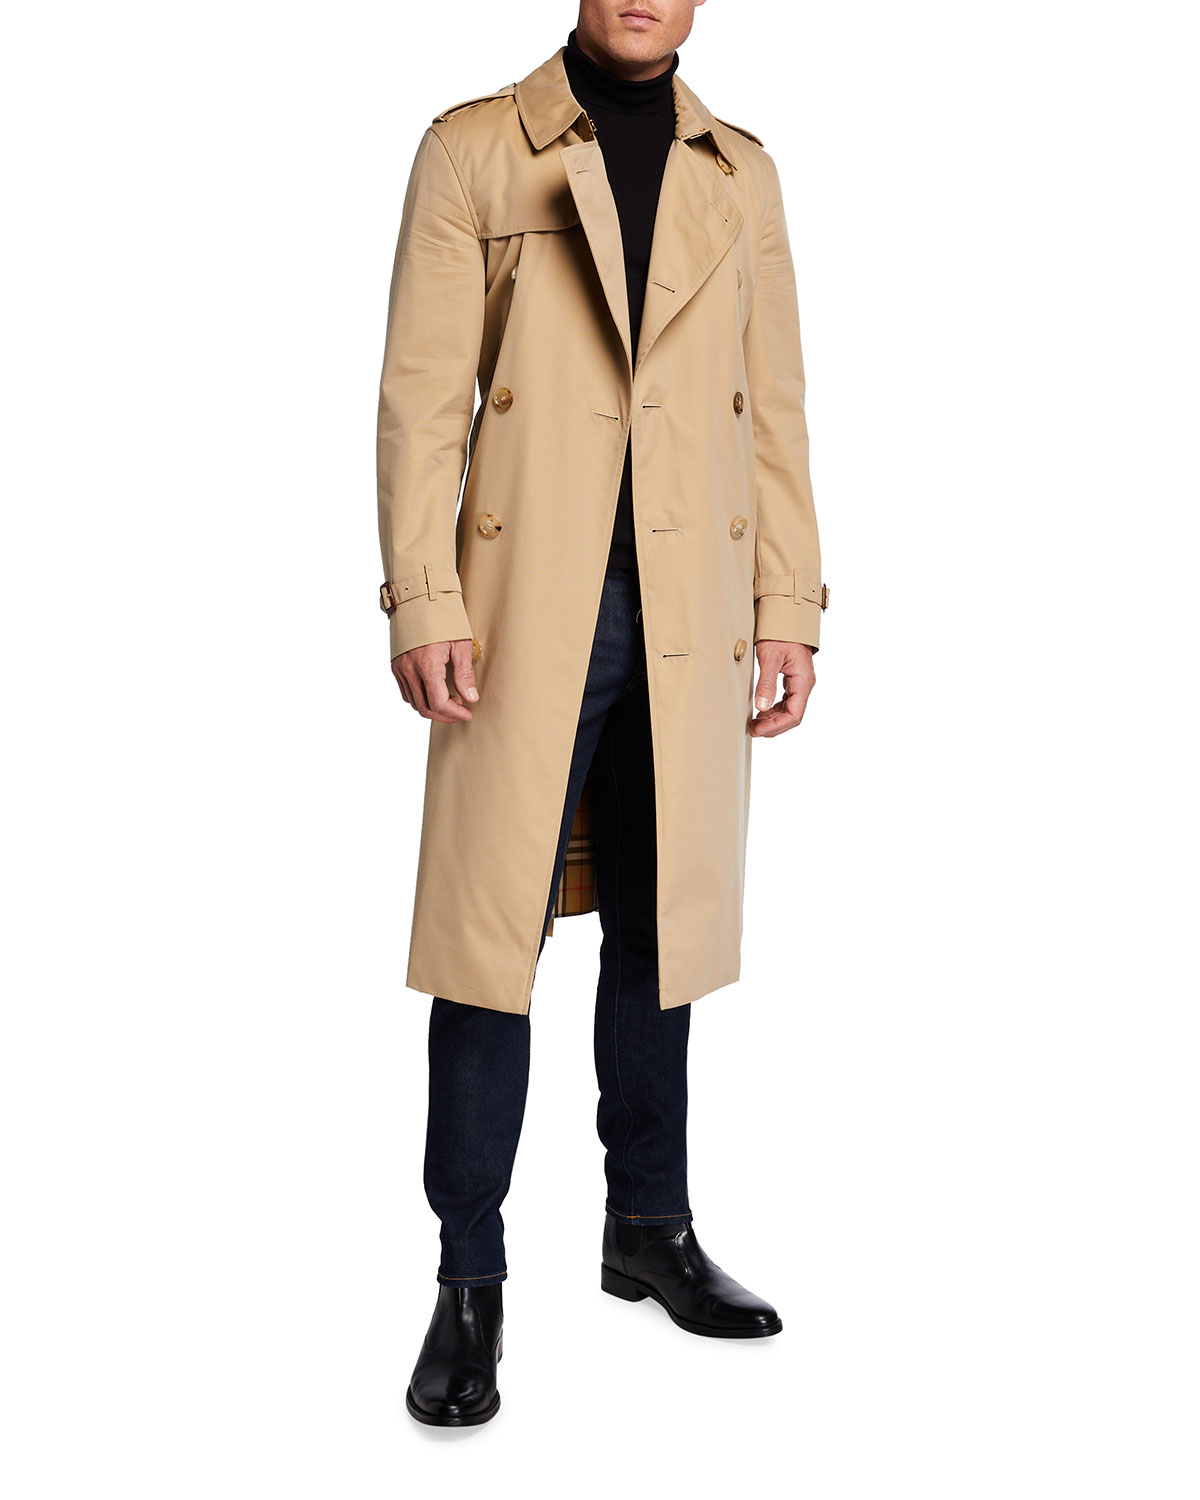 Burberry MEN'S KENSINGTON DOUBLE-BREASTED LONG TRENCH COAT